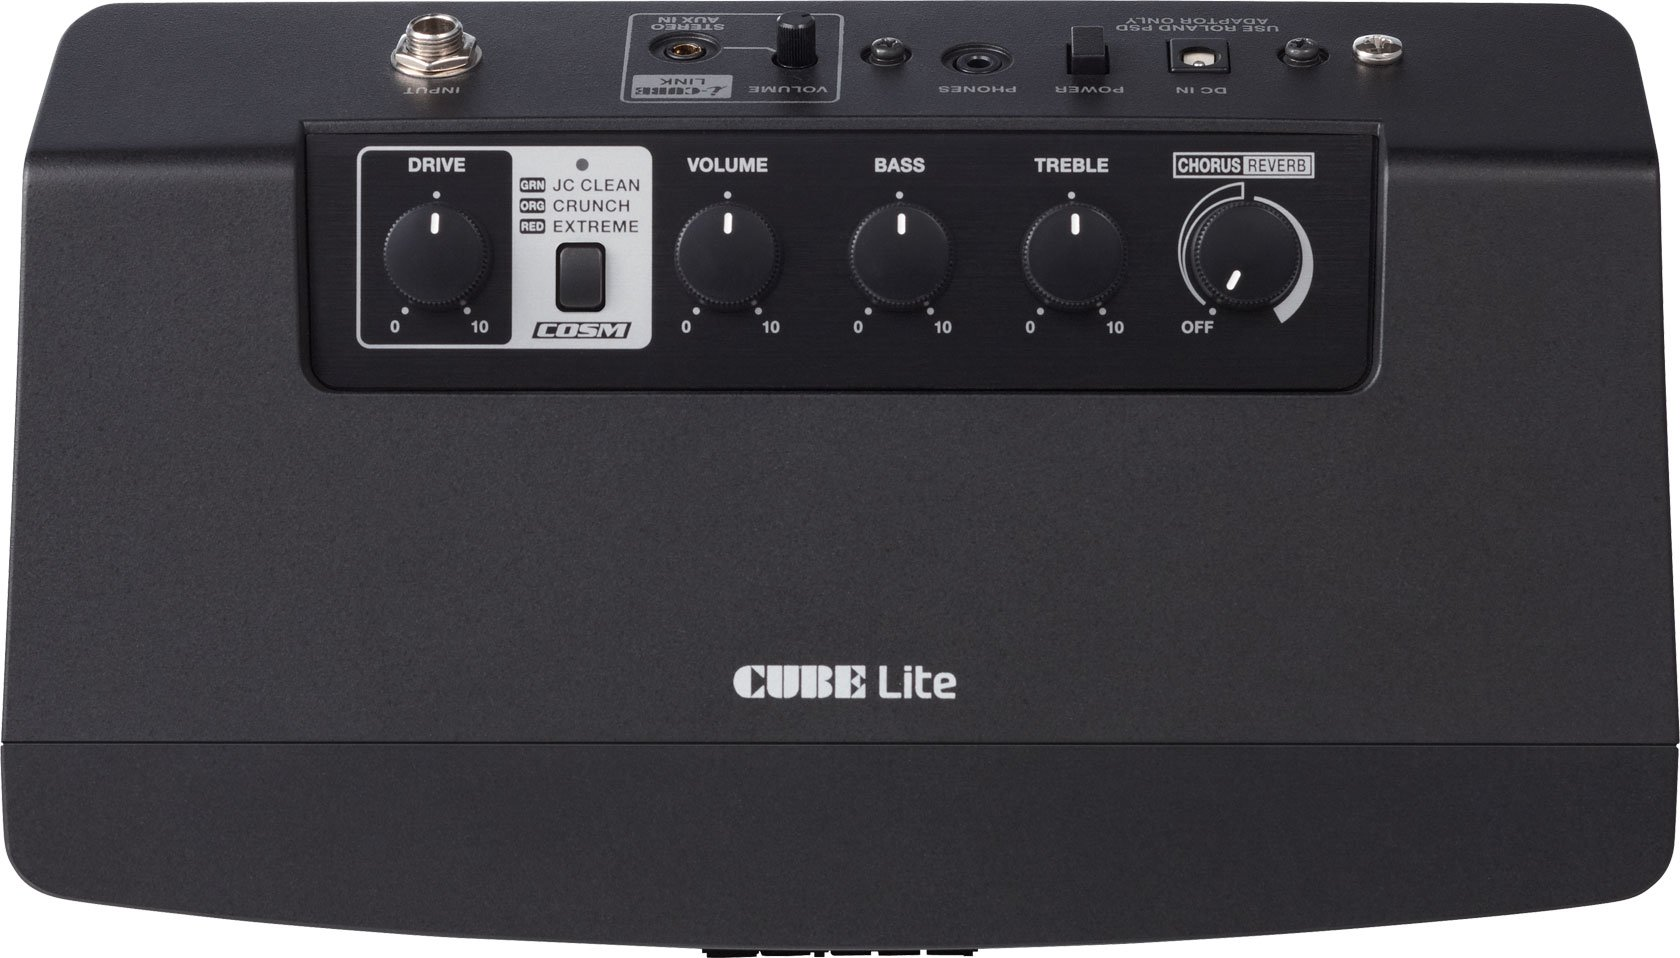 10W Modeling Guitar Amplifier with COSM Tones, iOS Interfacing